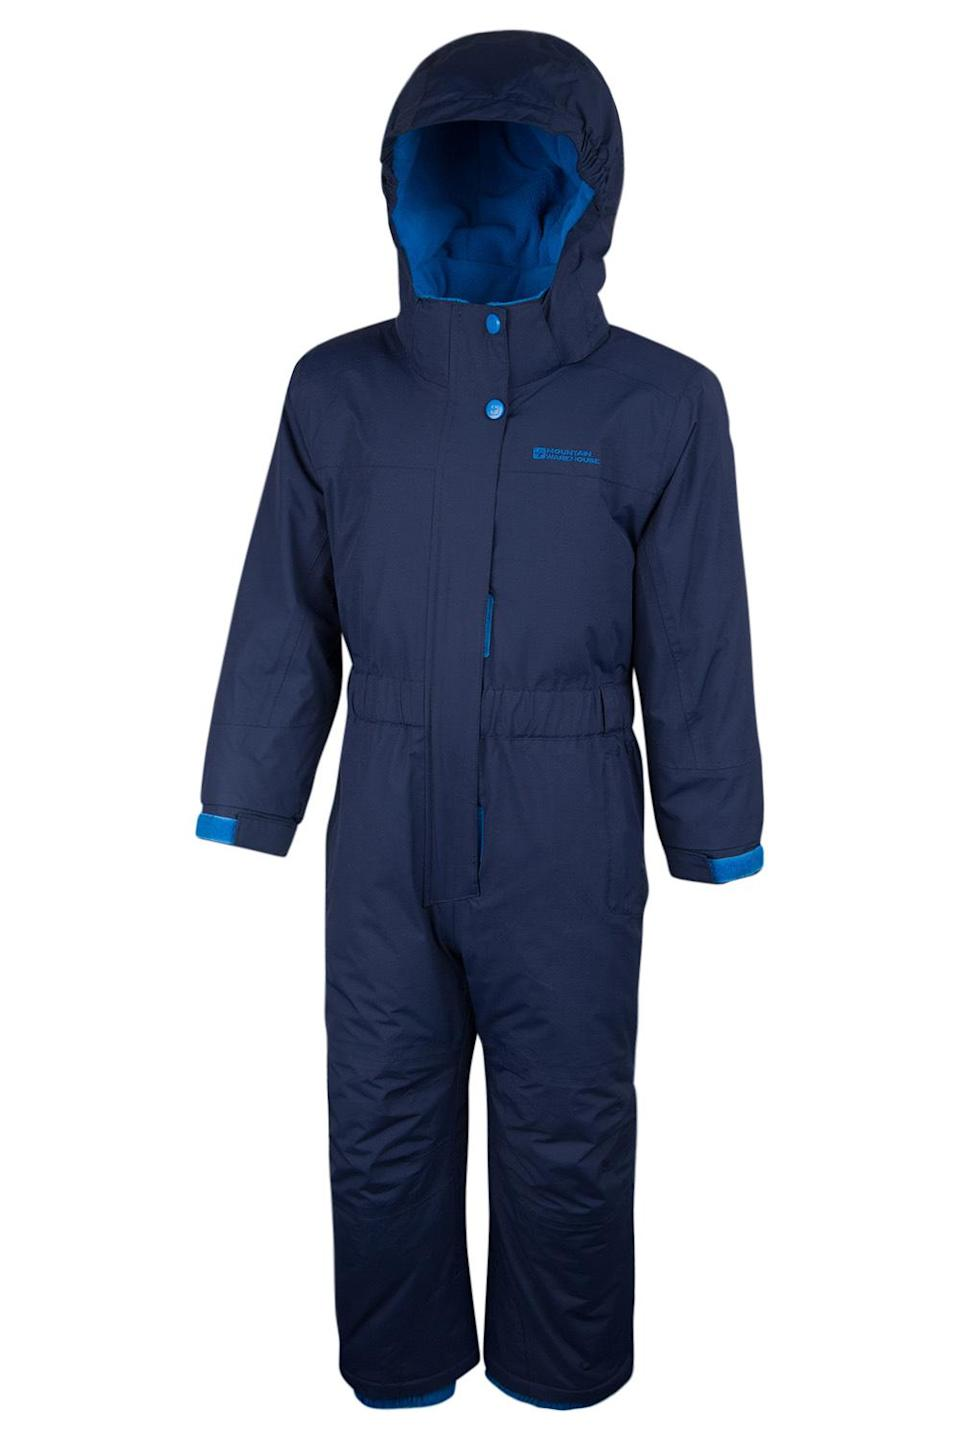 "<p><em><a rel=""nofollow noopener"" href=""https://www.mountainwarehouse.com/kids/toddler/snowsuits/cloud-all-in-one-snowsuit-p10908.aspx/Navy/?rrec=true"" target=""_blank"" data-ylk=""slk:Mountain Warehouse"" class=""link rapid-noclick-resp"">Mountain Warehouse</a>, £49.99 </em> </p>"